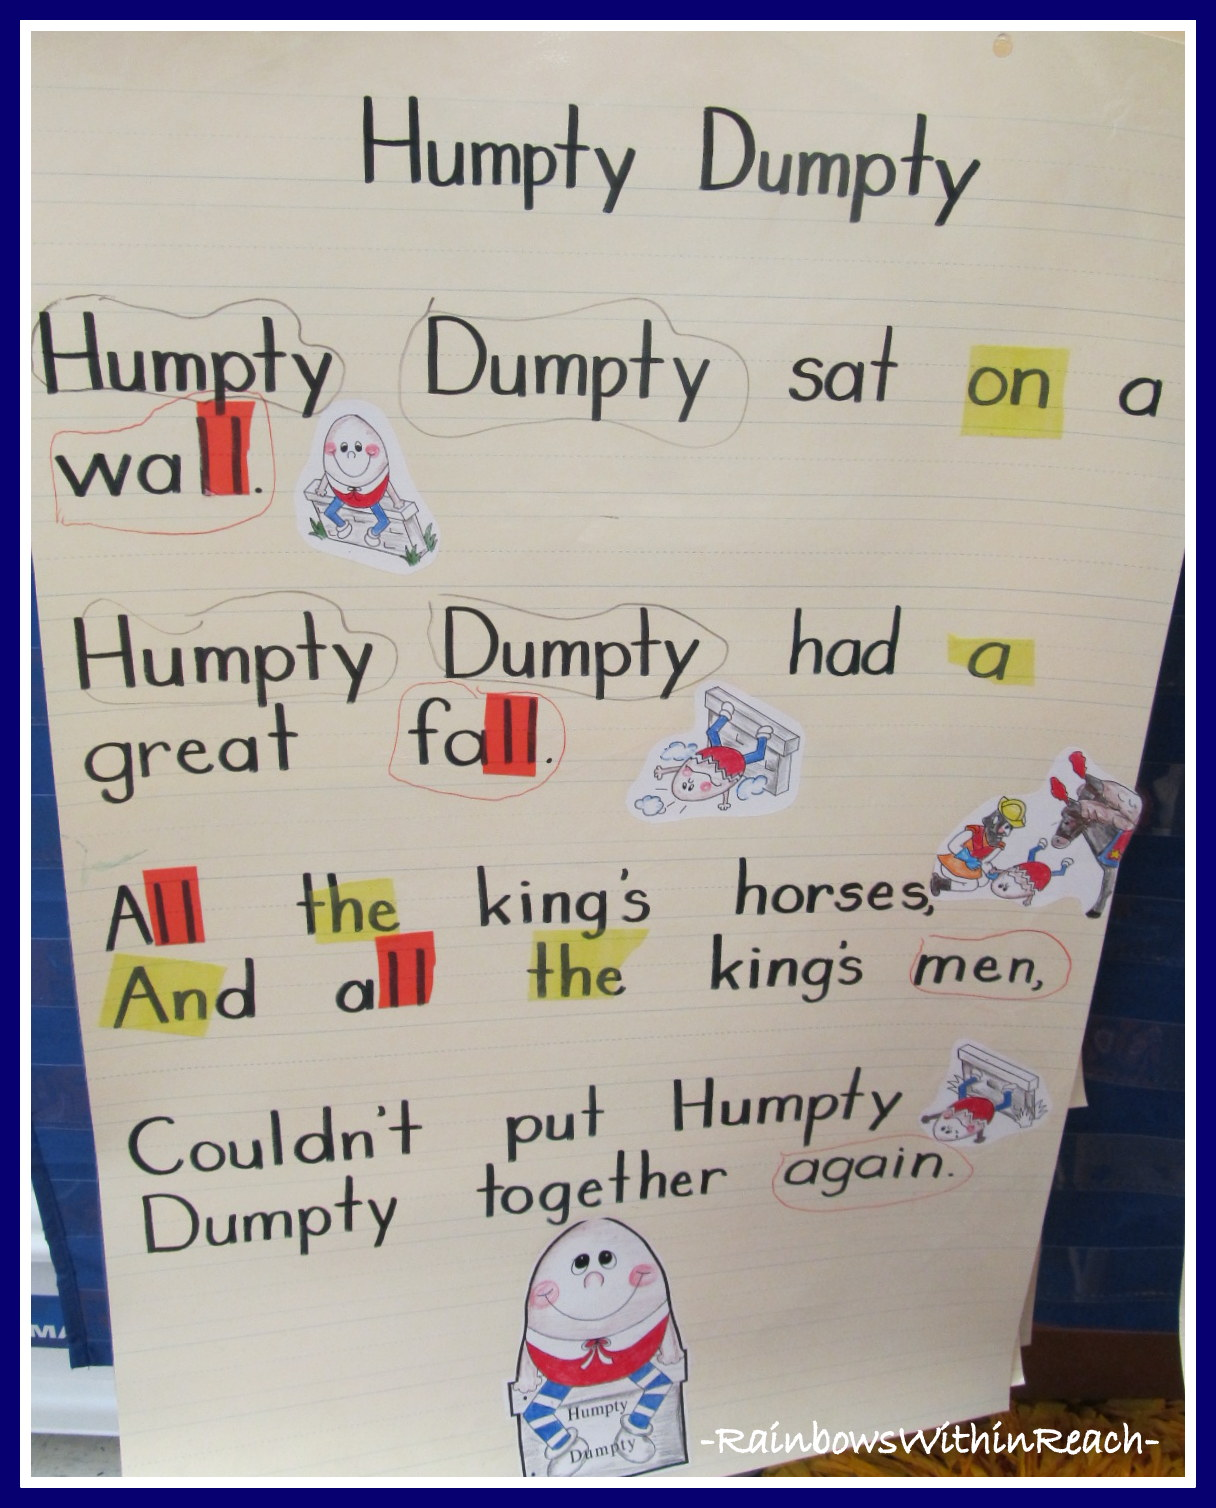 Anchor Charts in Kindergarten http://rainbowswithinreach.blogspot.com/2012/07/humpty-dumpty-nursery-rhyme.html